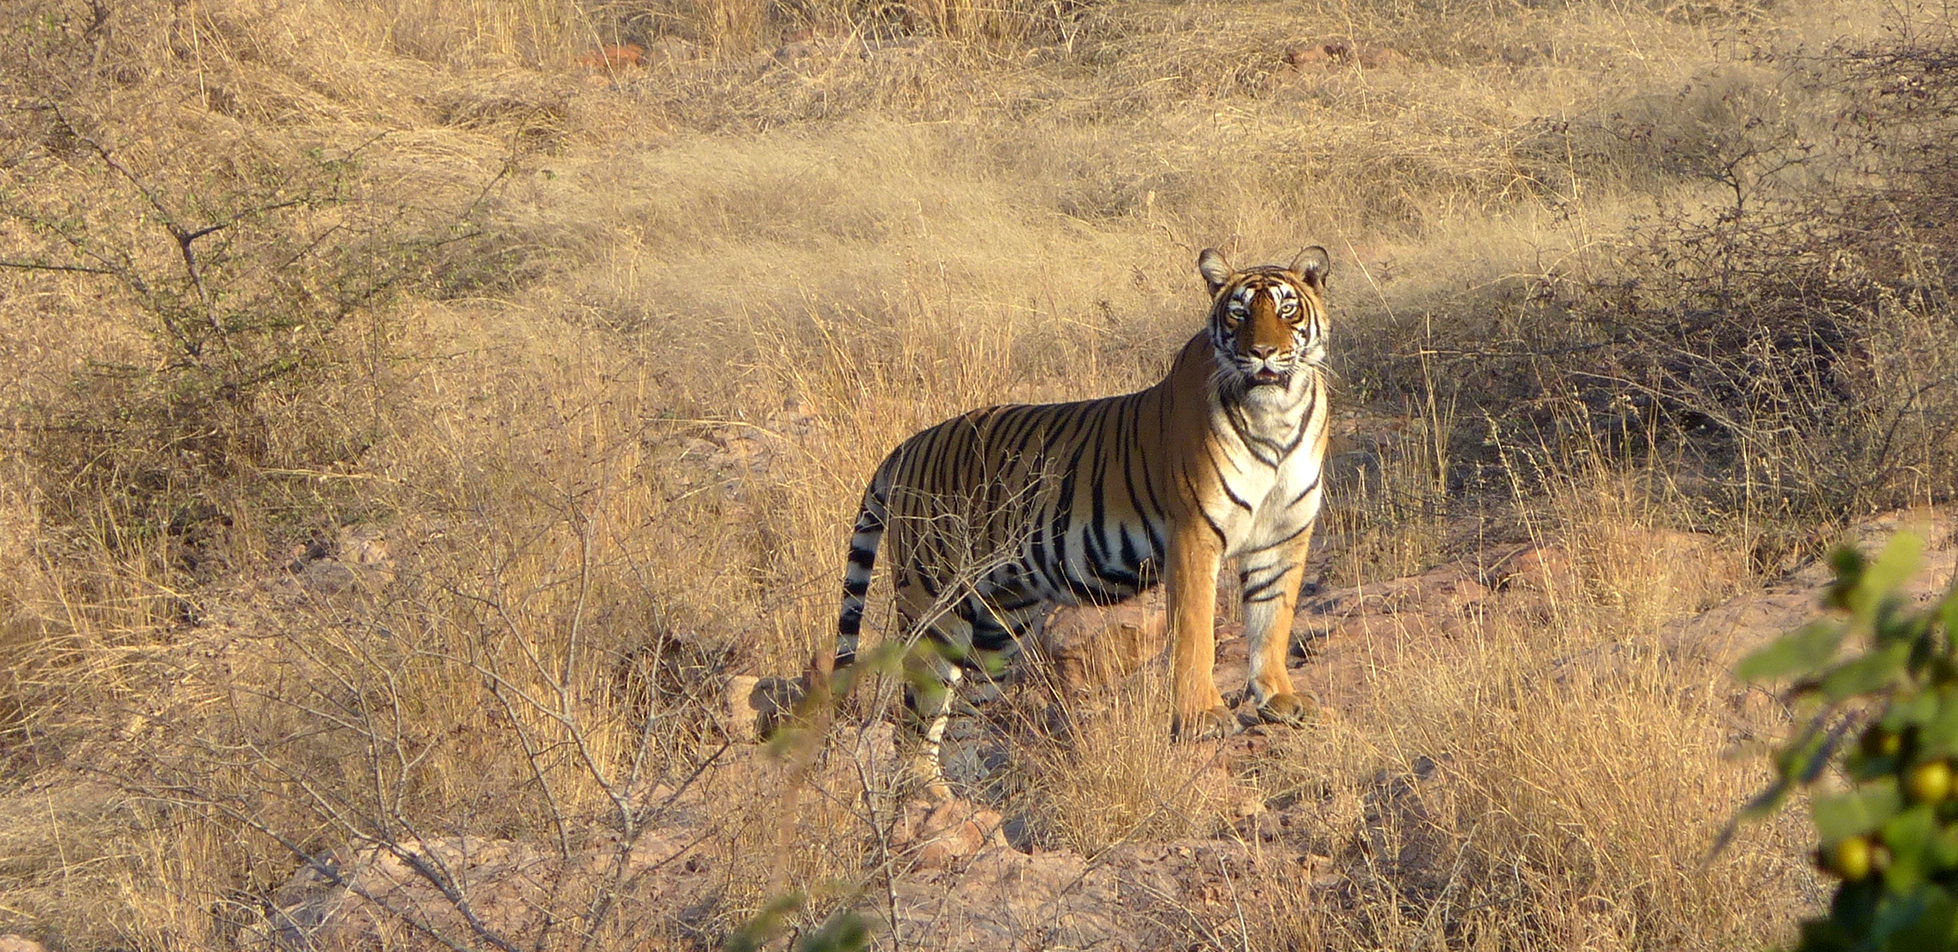 Tiger Encounter in Bardia National Park